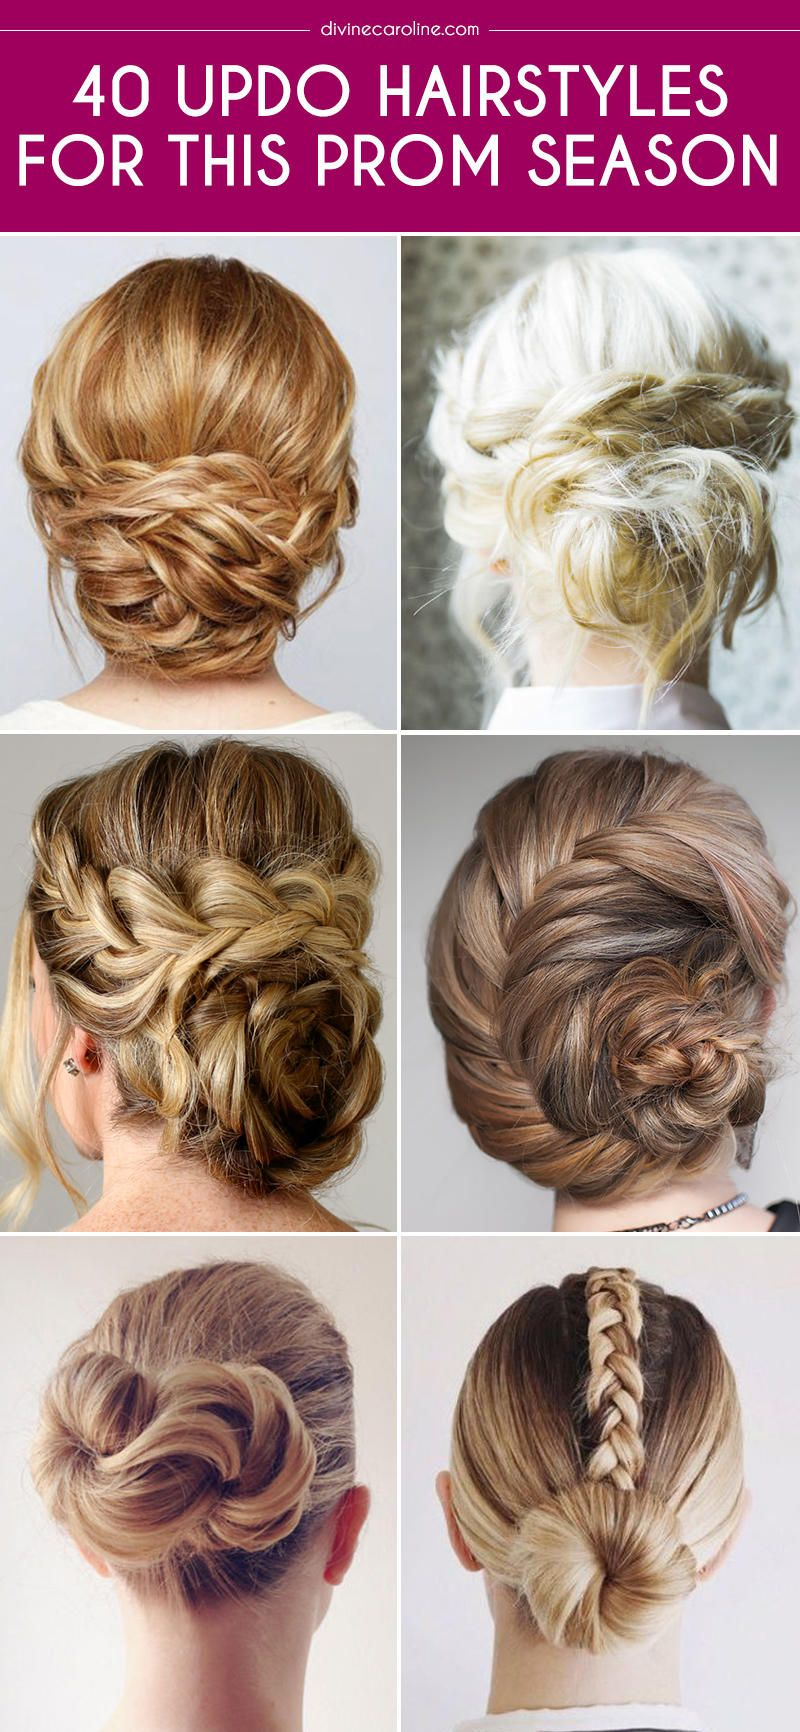 updo hairstyles for this prom season hair pinterest updo